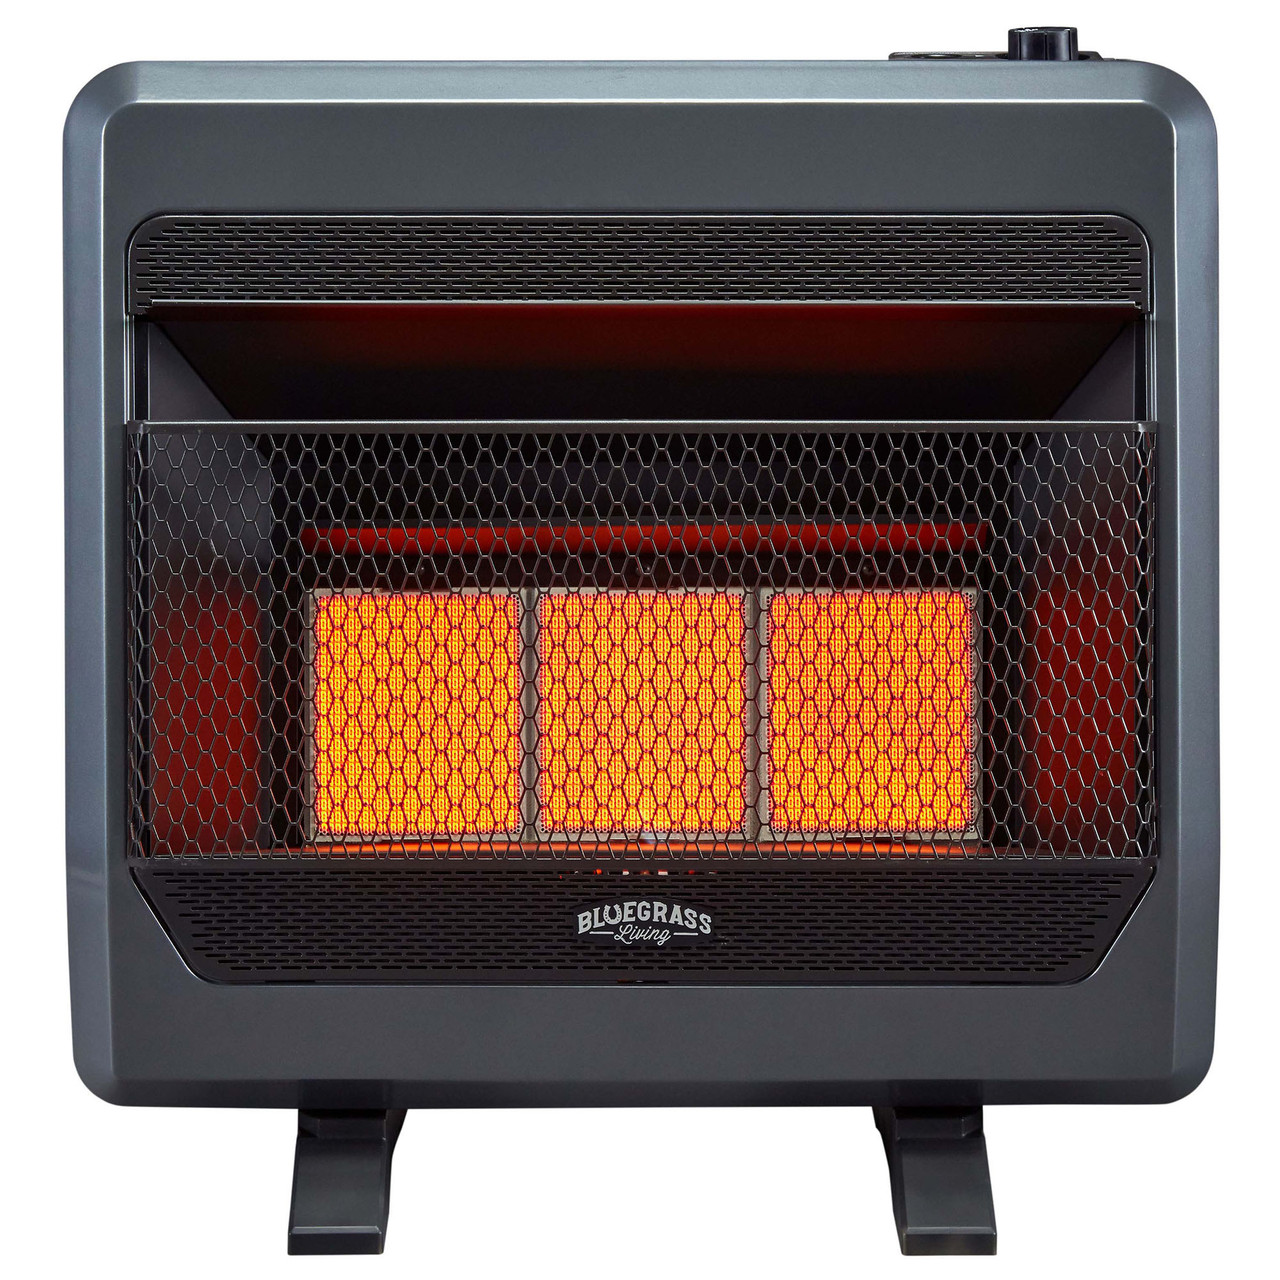 Bluegrass Living Natural Gas Vent Free Infrared Gas Space Heater With Blower And Base Feet 30 000 Btu T Stat Control Model B30tnir Bb Factory Buys Direct